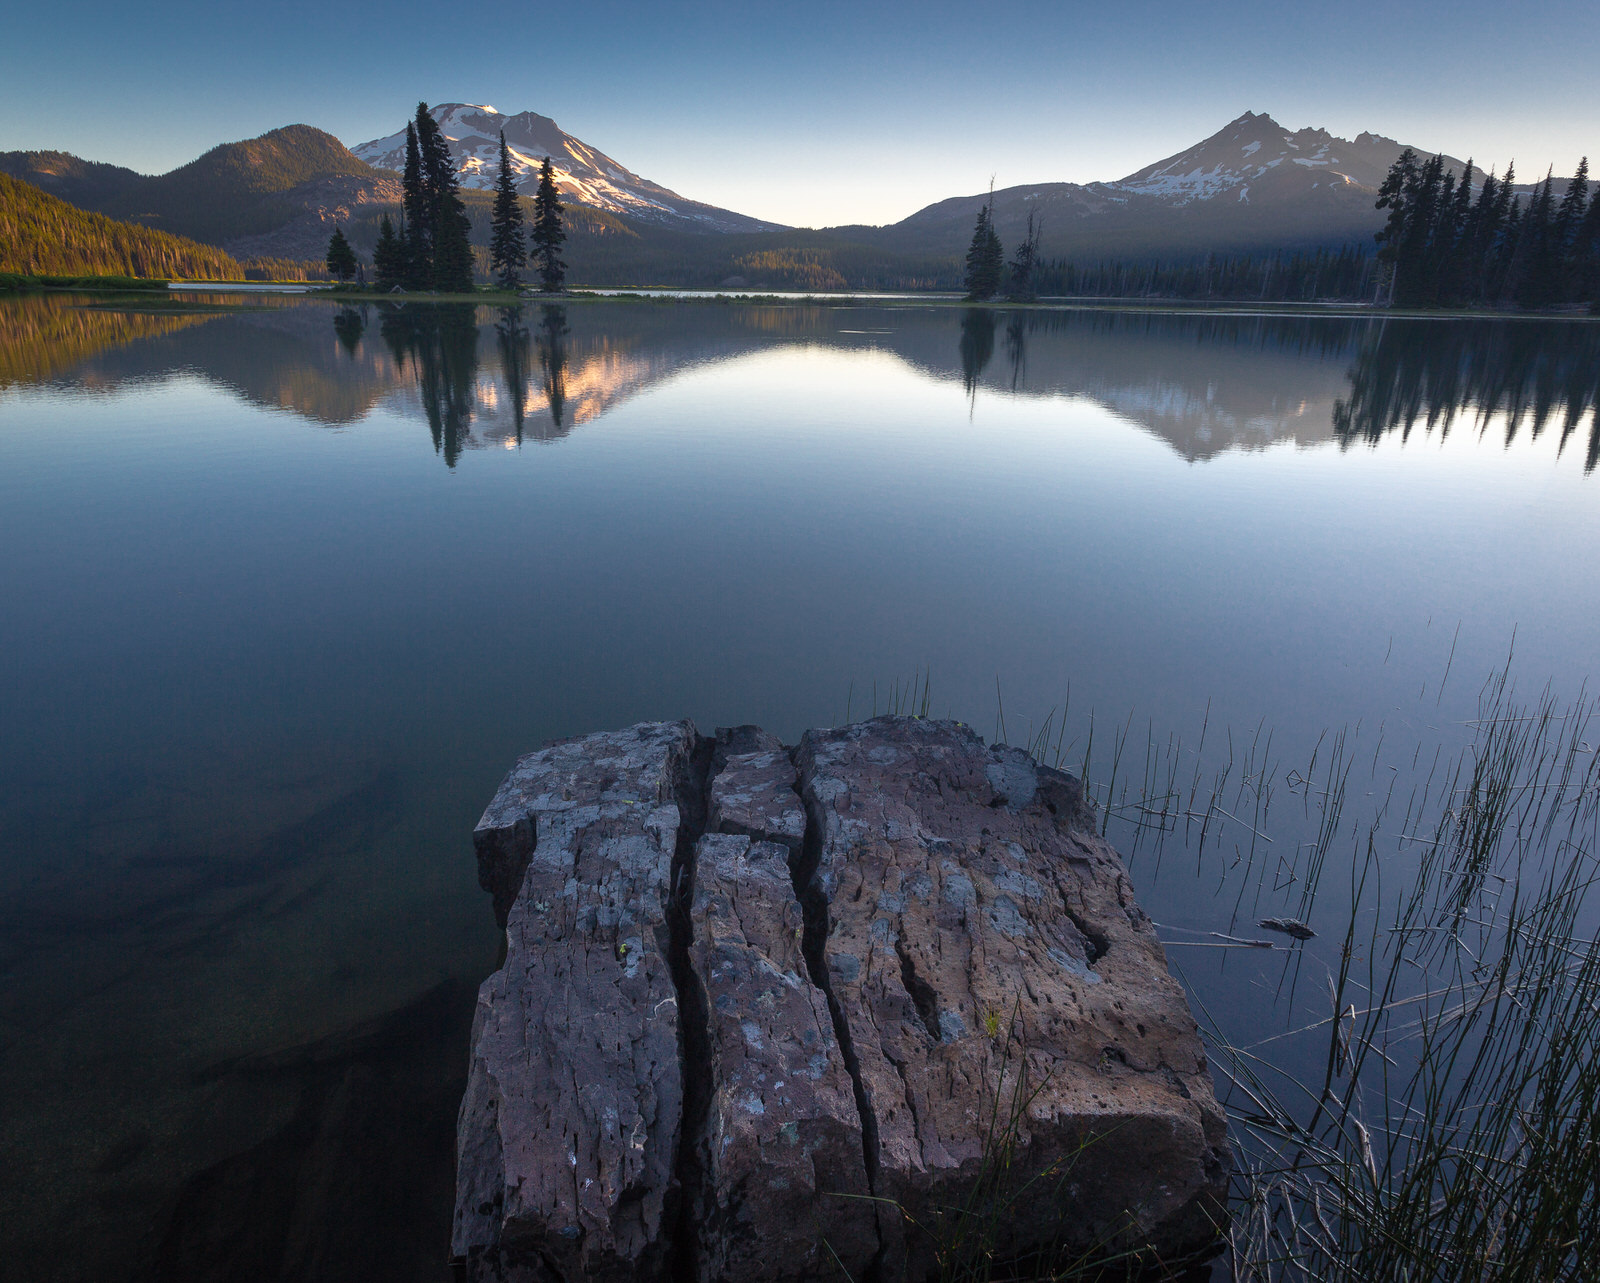 Sparks Lake at sunrise near Bend, Oregon